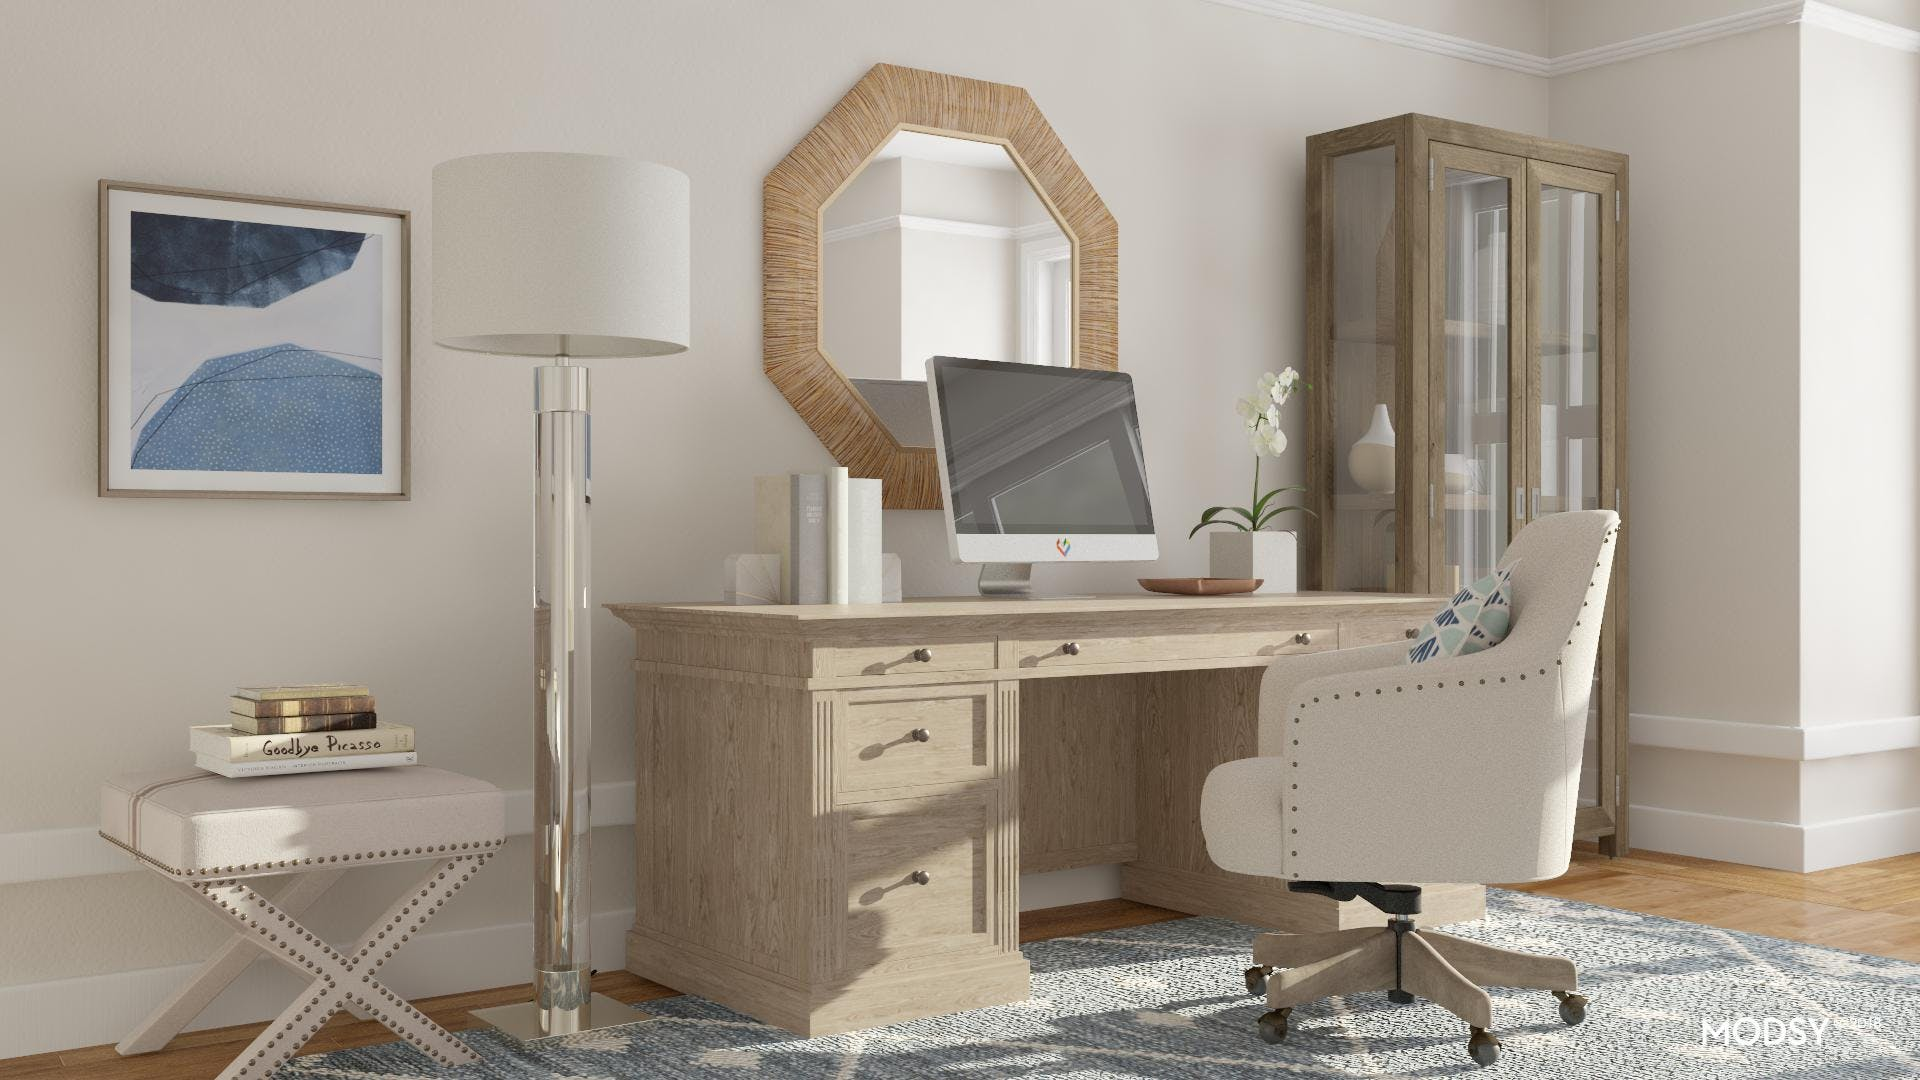 The Contemporary Connoisseur's Office